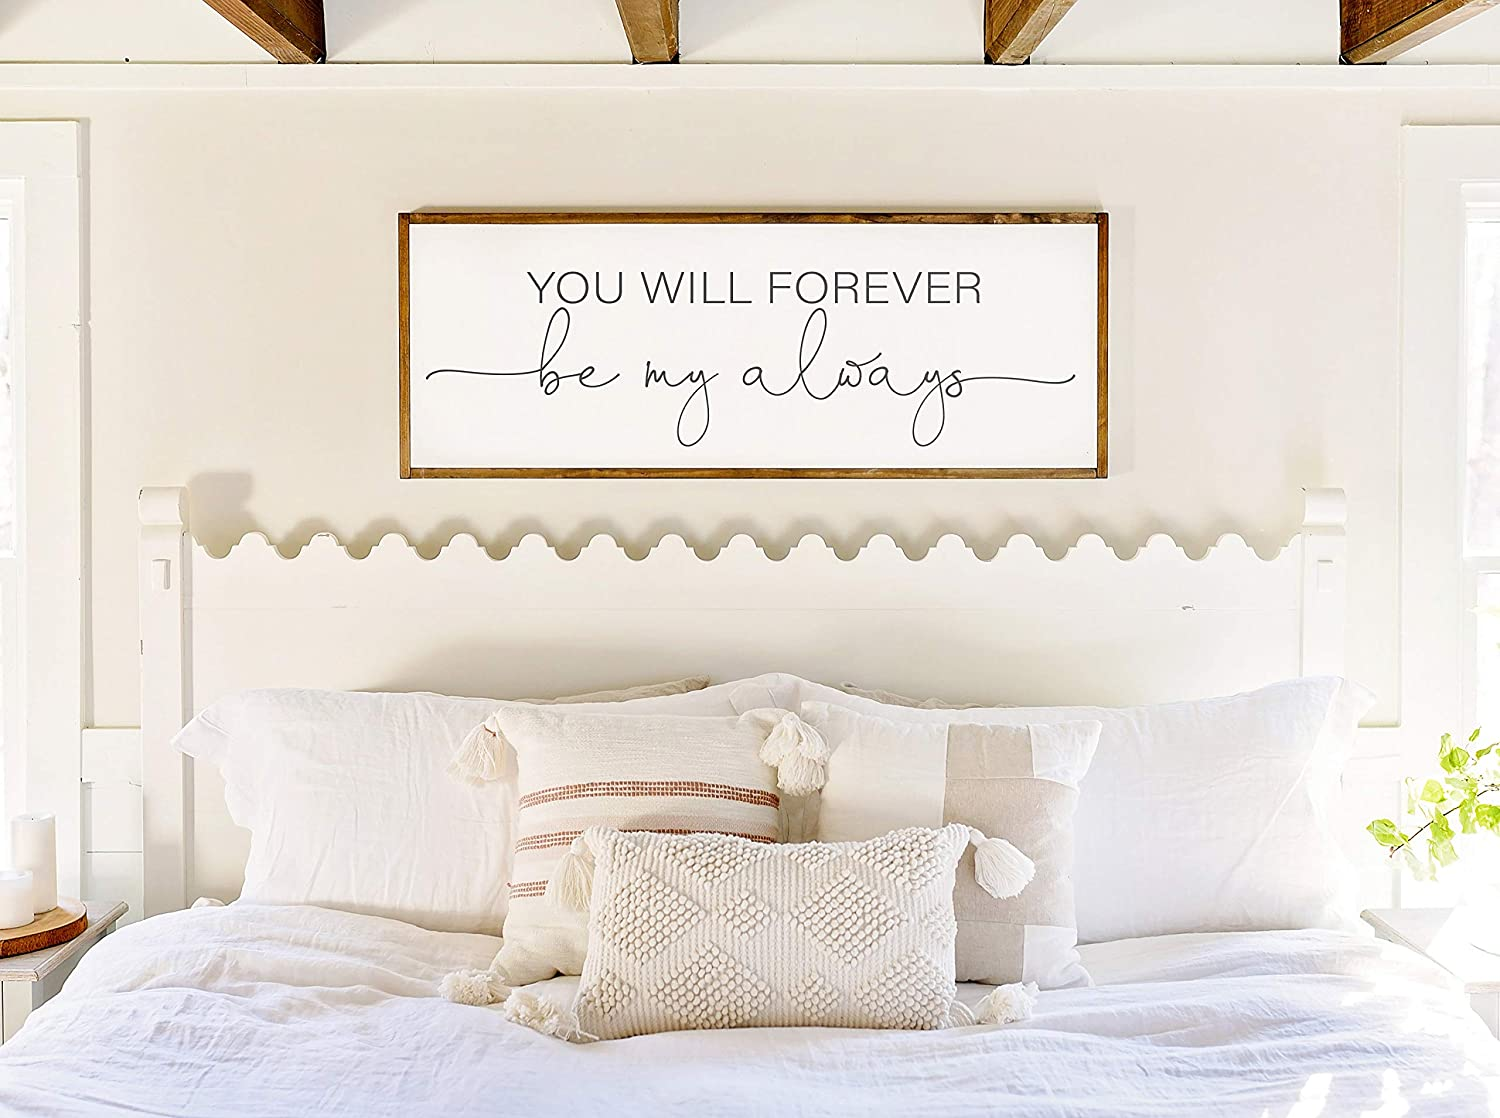 EricauBird Wood Sign-Bedroom Wall Decor,Sign for Above Bed,You Will Forever be My Always Wood Sign,Master Bedroom Wall Decor,Above Bed Signs, Home Wall Art, 6x20